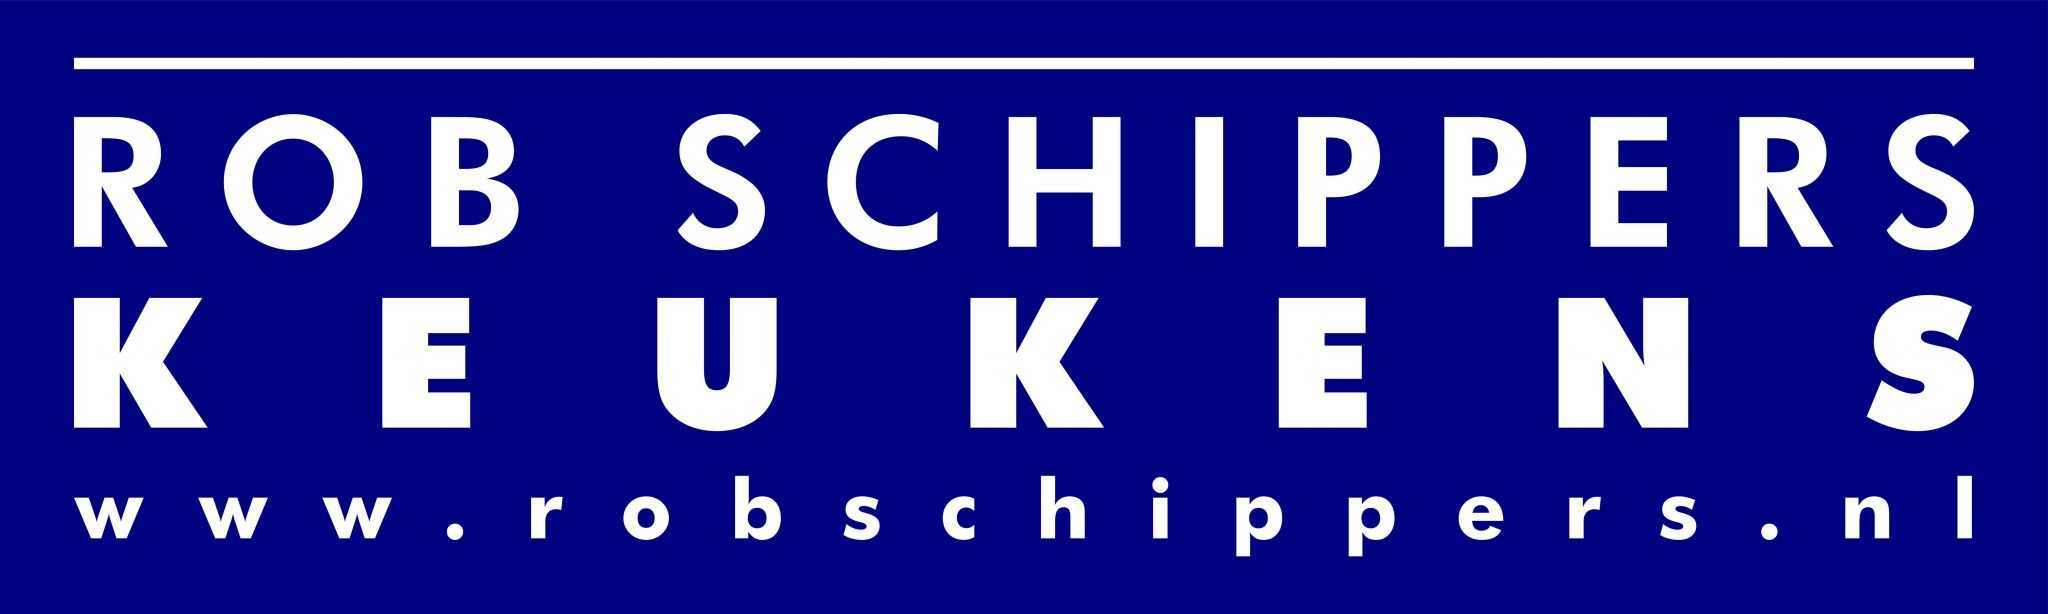 Rob Schippers-001-001